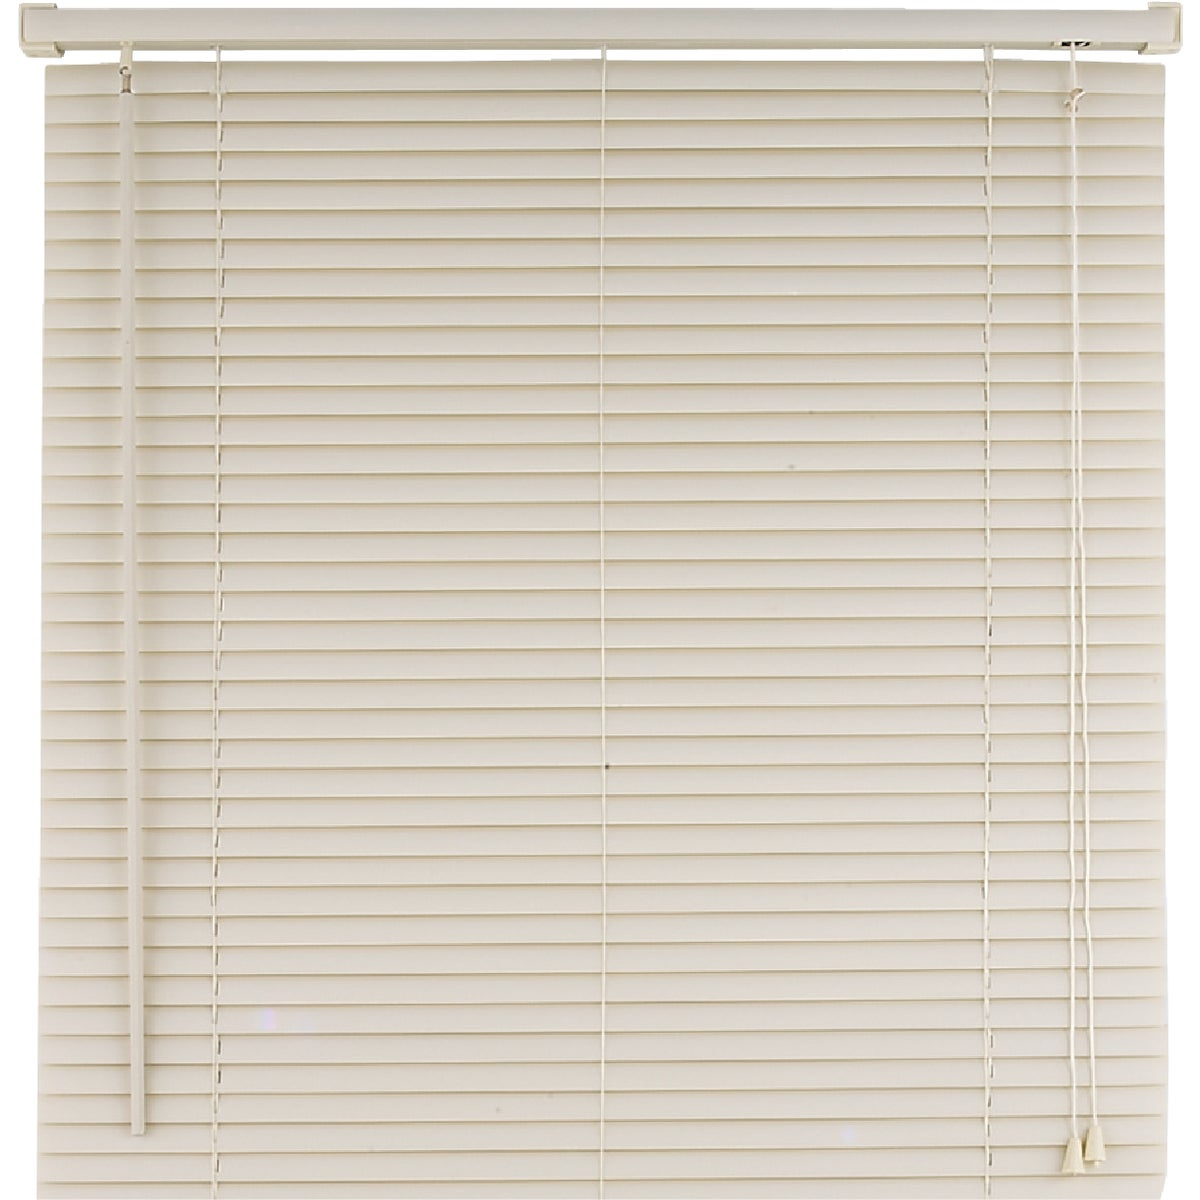 30X64 ALABASTER BLIND - 3064-453 by Lotus Wind Incom